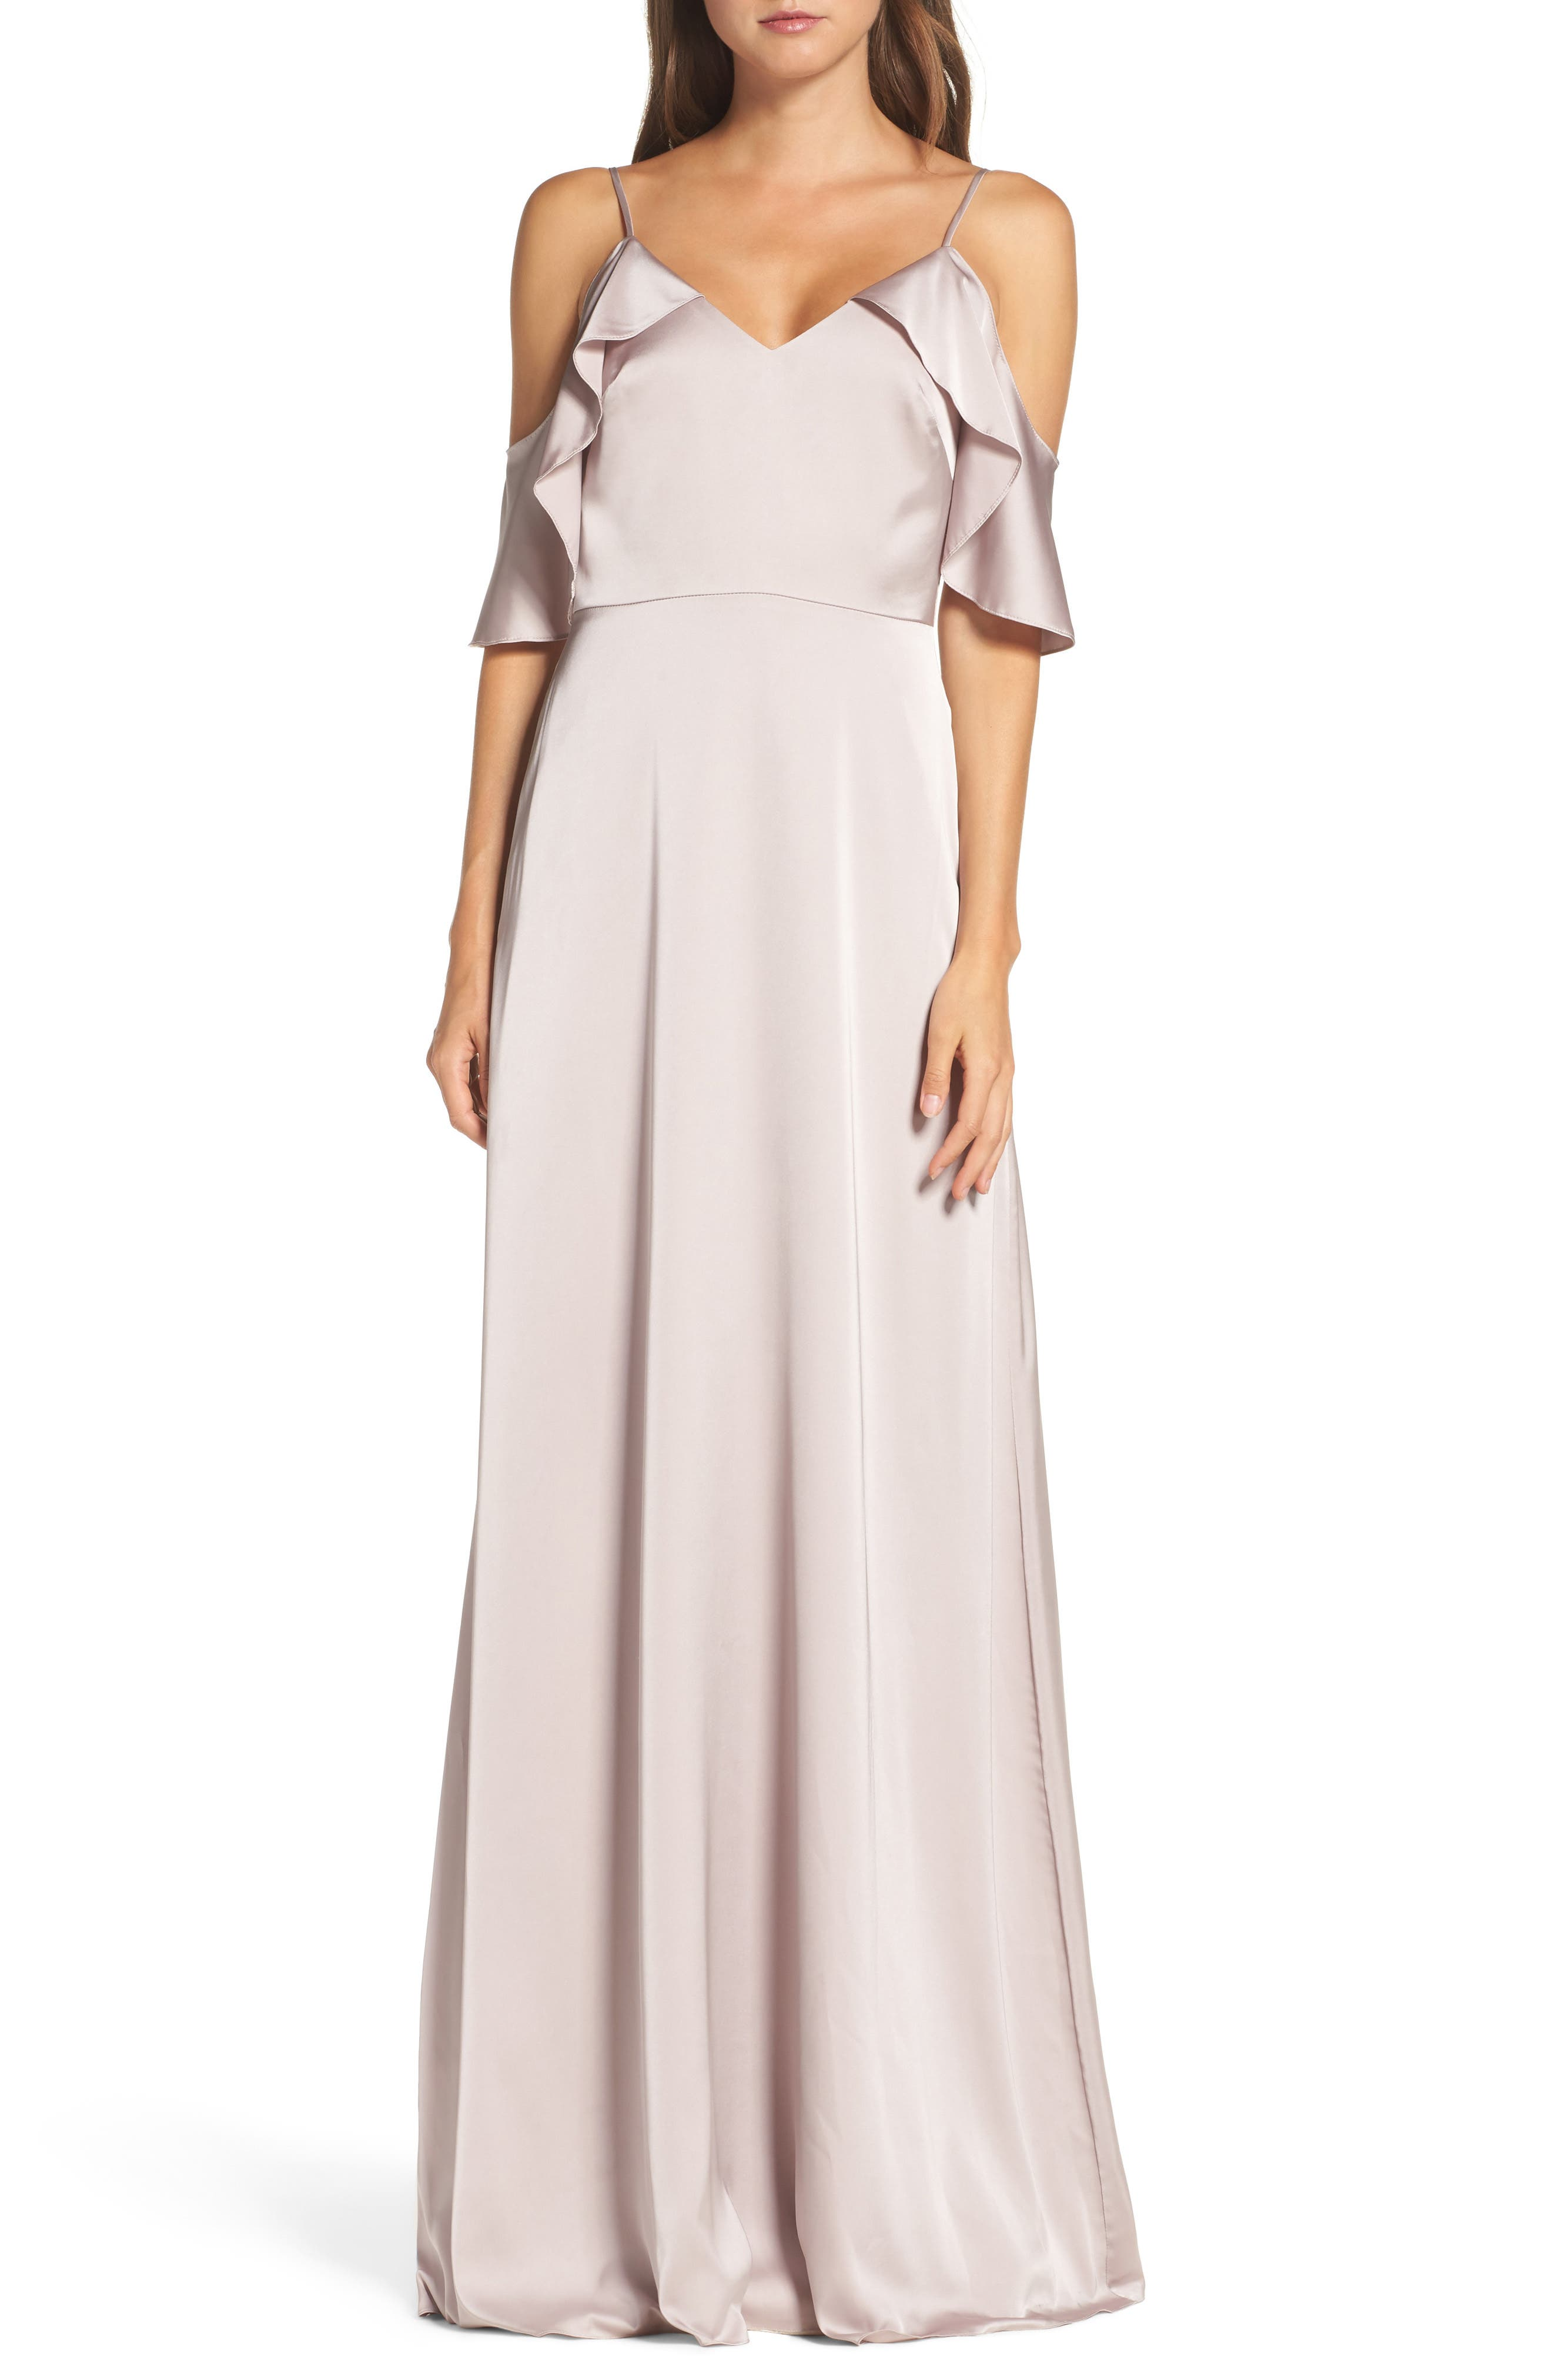 Monique Lhuillier Bridesmaids Isabel Sateen Cold Shoulder Gown (Nordstrom Exclusive)